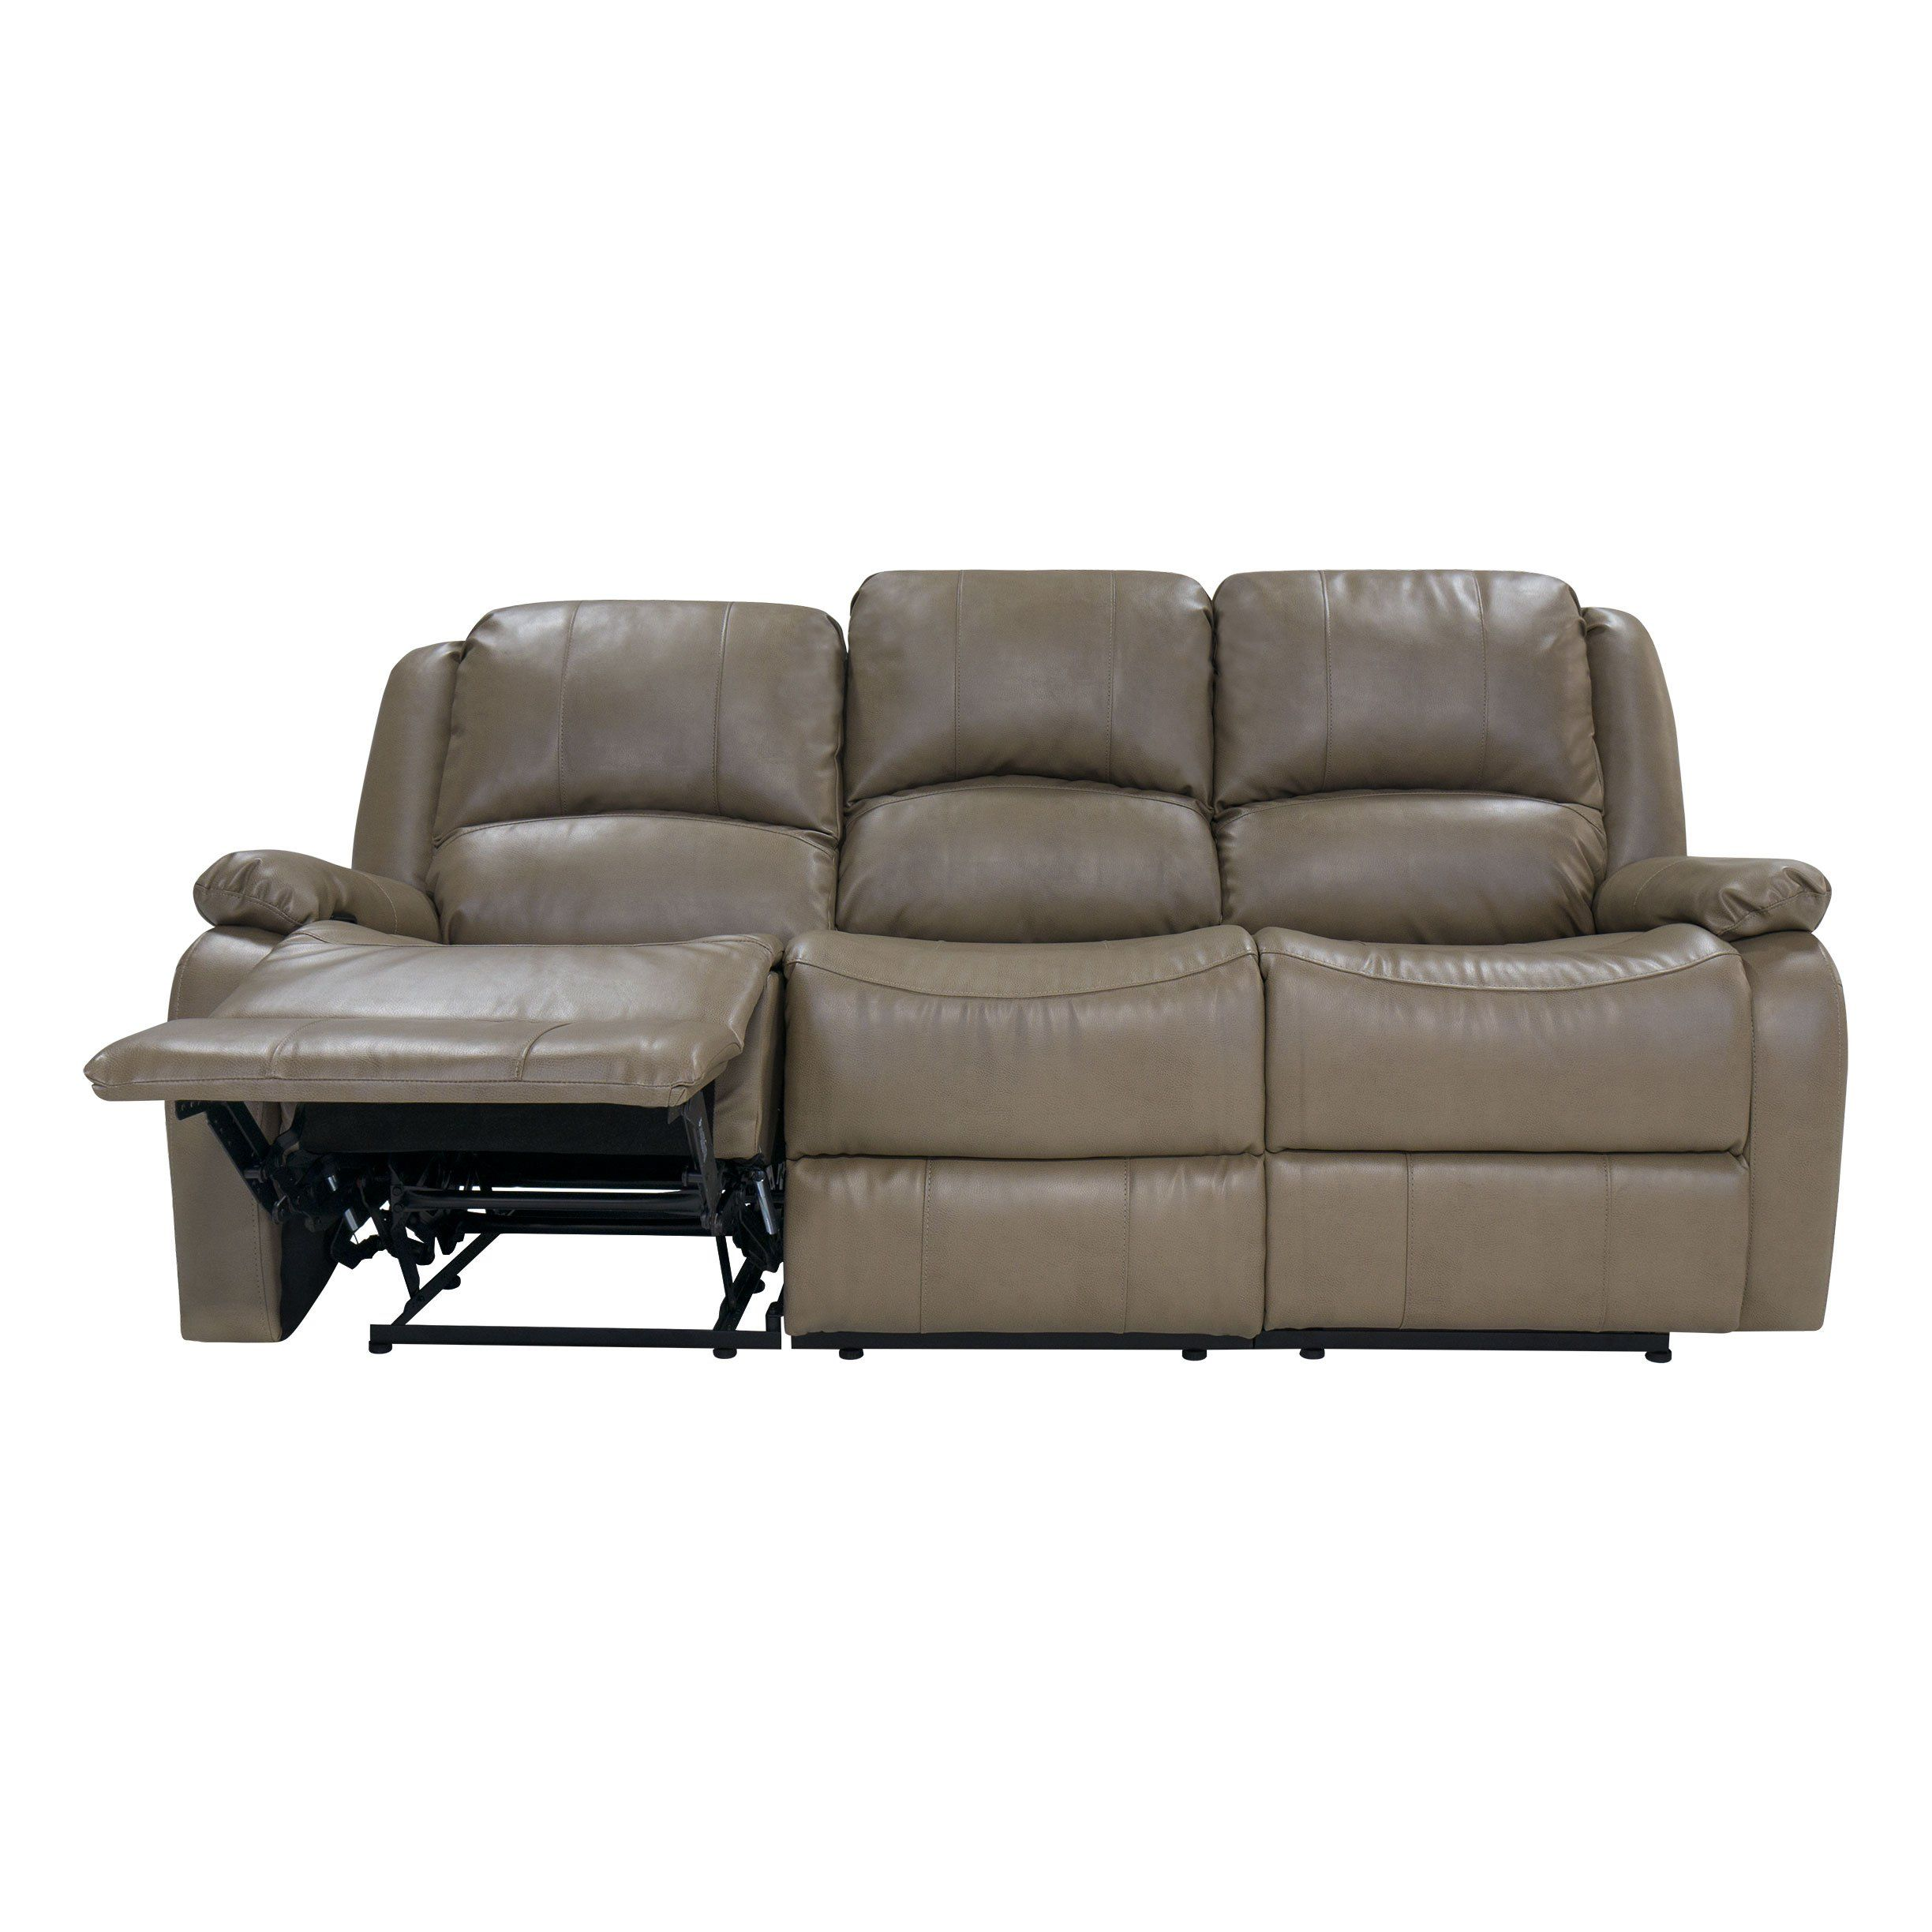 Charles Ashton Home Collection 80 Triple Recliner Sofa And Drop